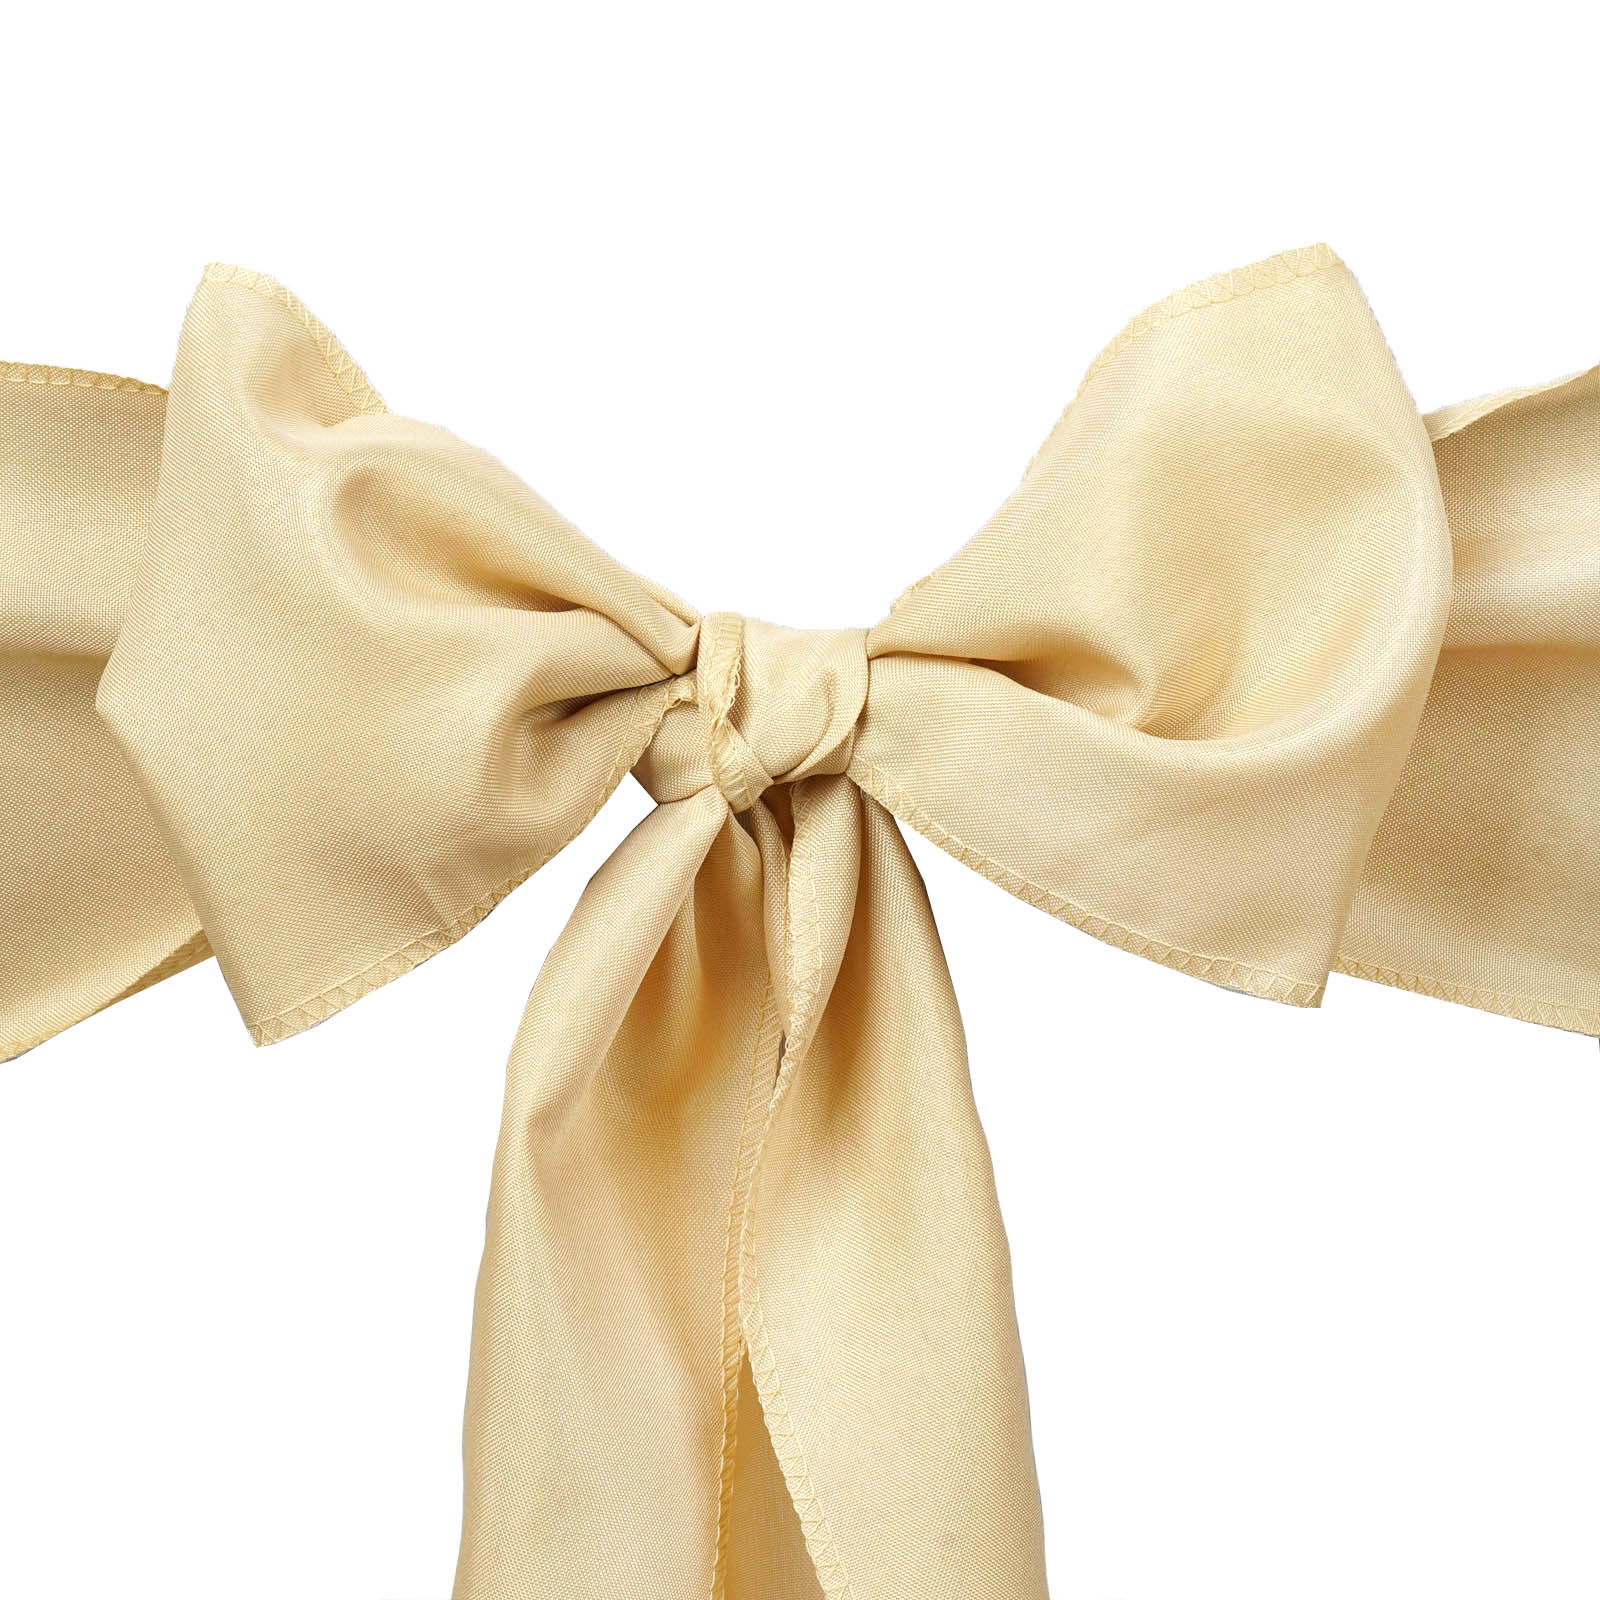 Chair Bows 25 Polyester Chair Sashes Ties Bows Wedding Party Ceremony